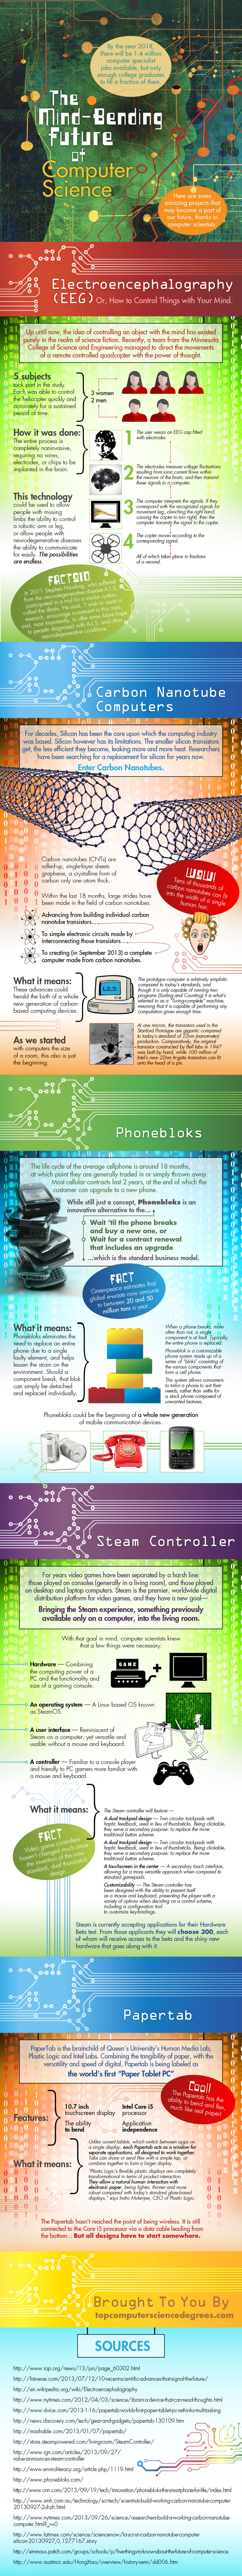 The Mind-Bending Future of Computer Science Infographic